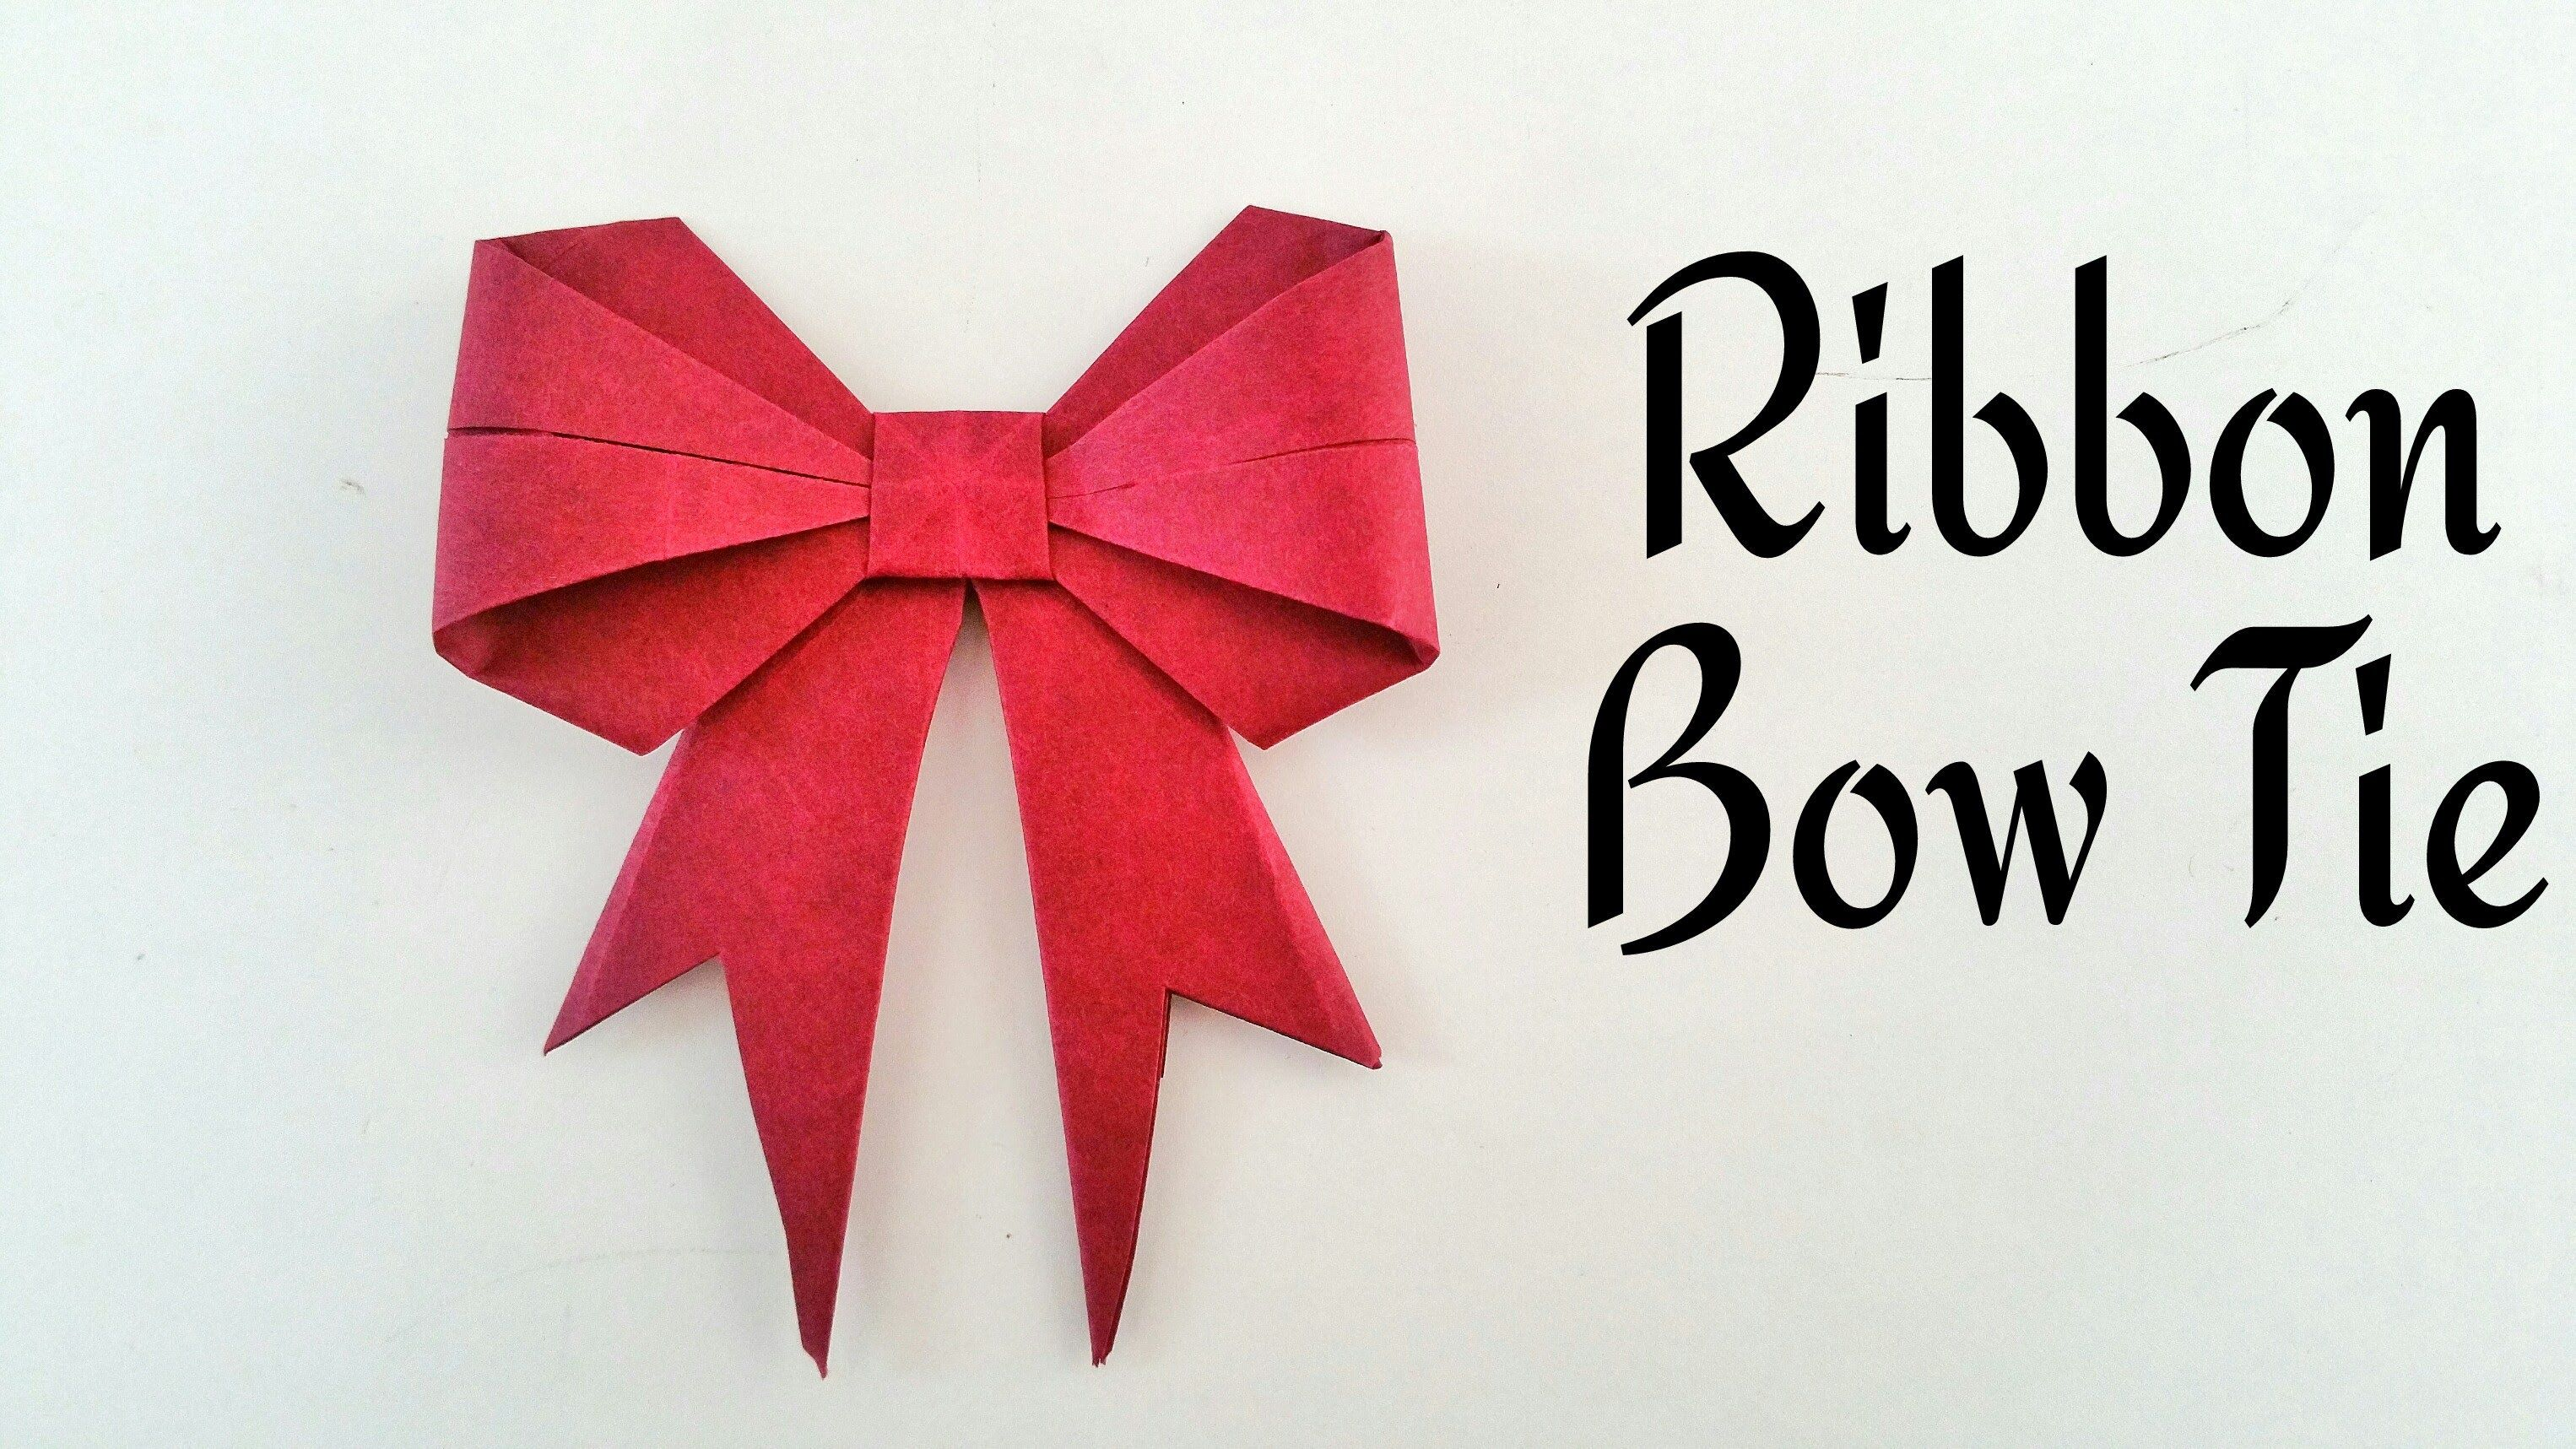 How To Make A Paper Cute Ribbon Bow Tie Origami Craft Tutorial Origami Crafts Diy Bow Tie Origami